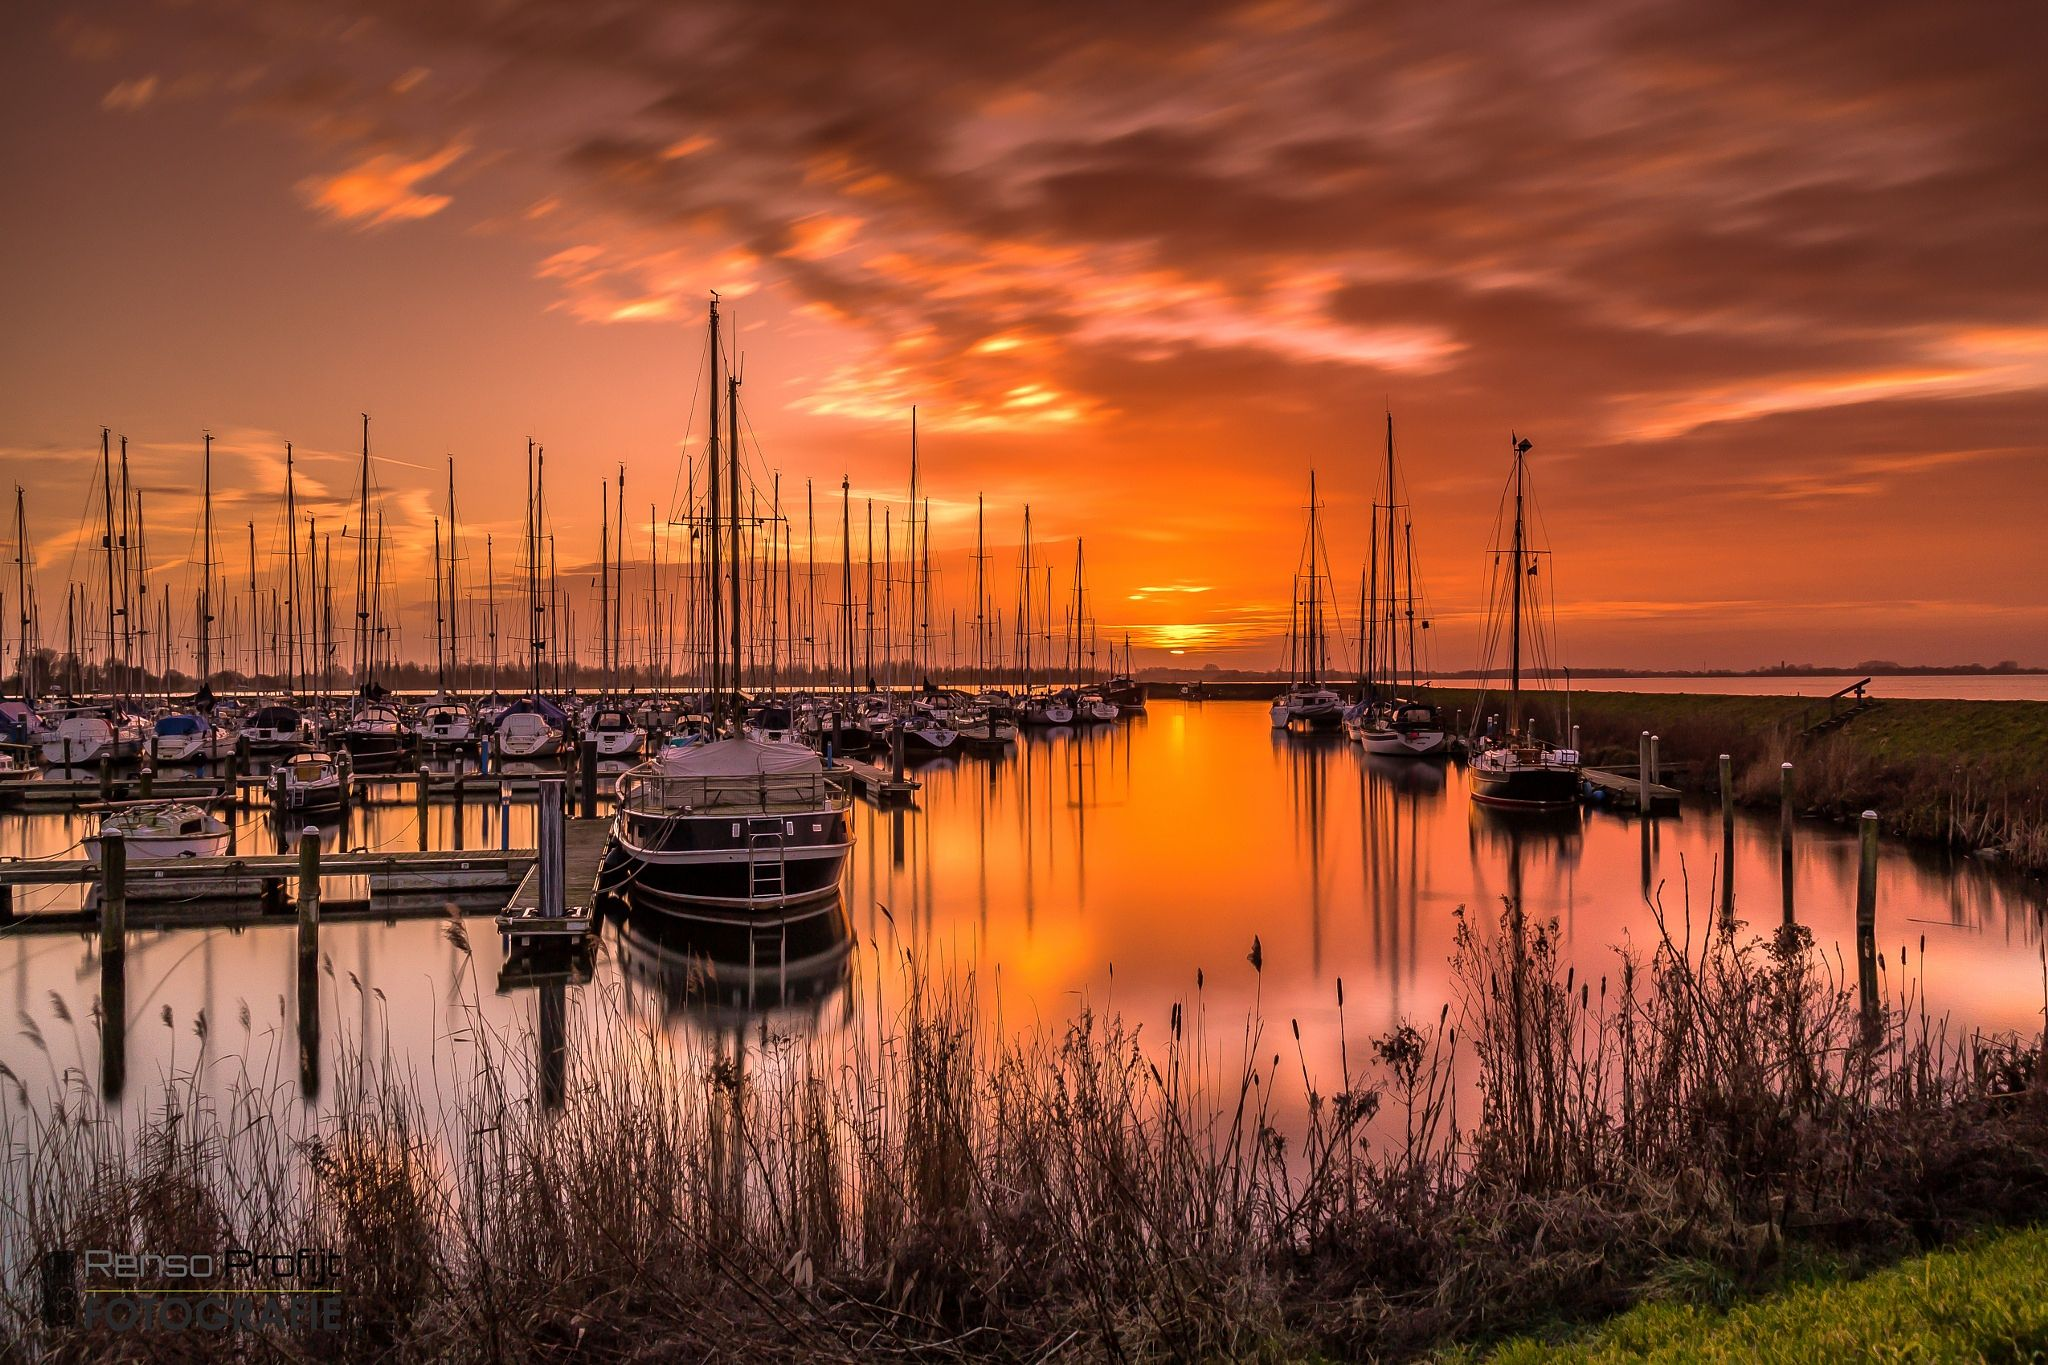 Sunset Harbour Andijk by Renso Profijt on 500px